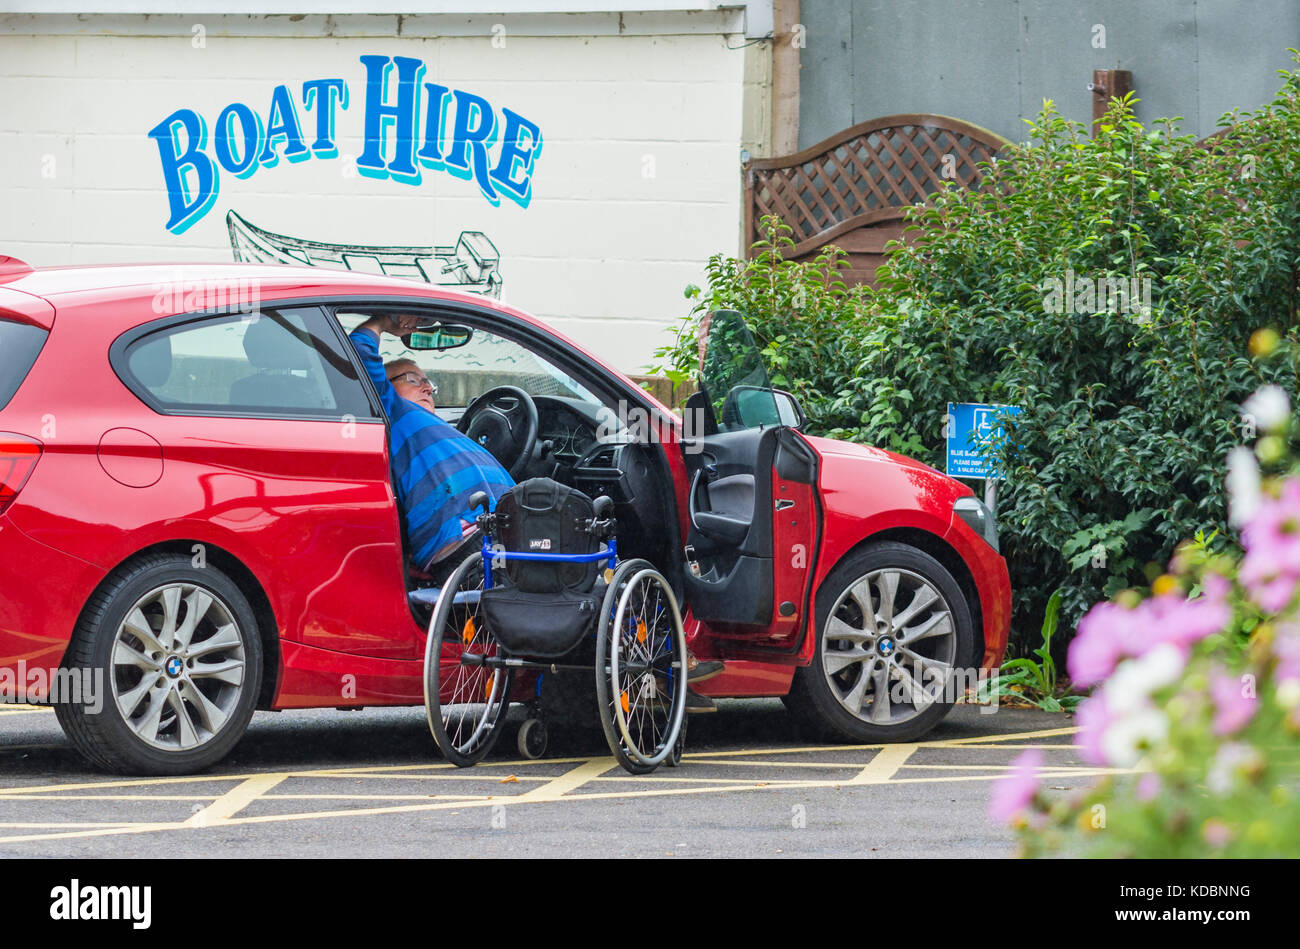 Disabled man climbing into a car from a wheelchair. - Stock Image